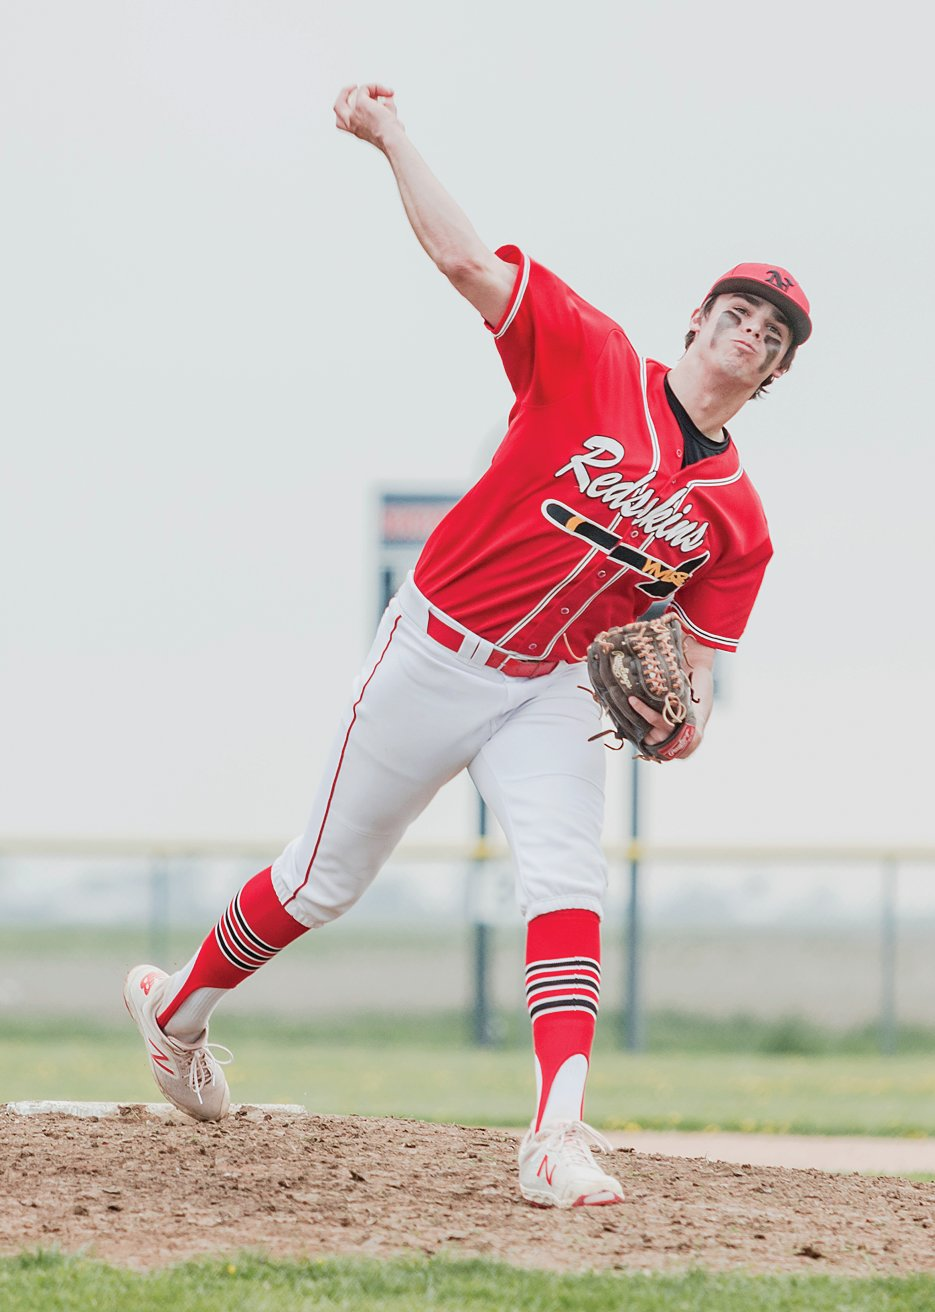 Nokomis pitcher Carter Sabol struck out 14 batters in five innings on Tuesday, April 23, as the Redskins defeated Central A&M 10-0.